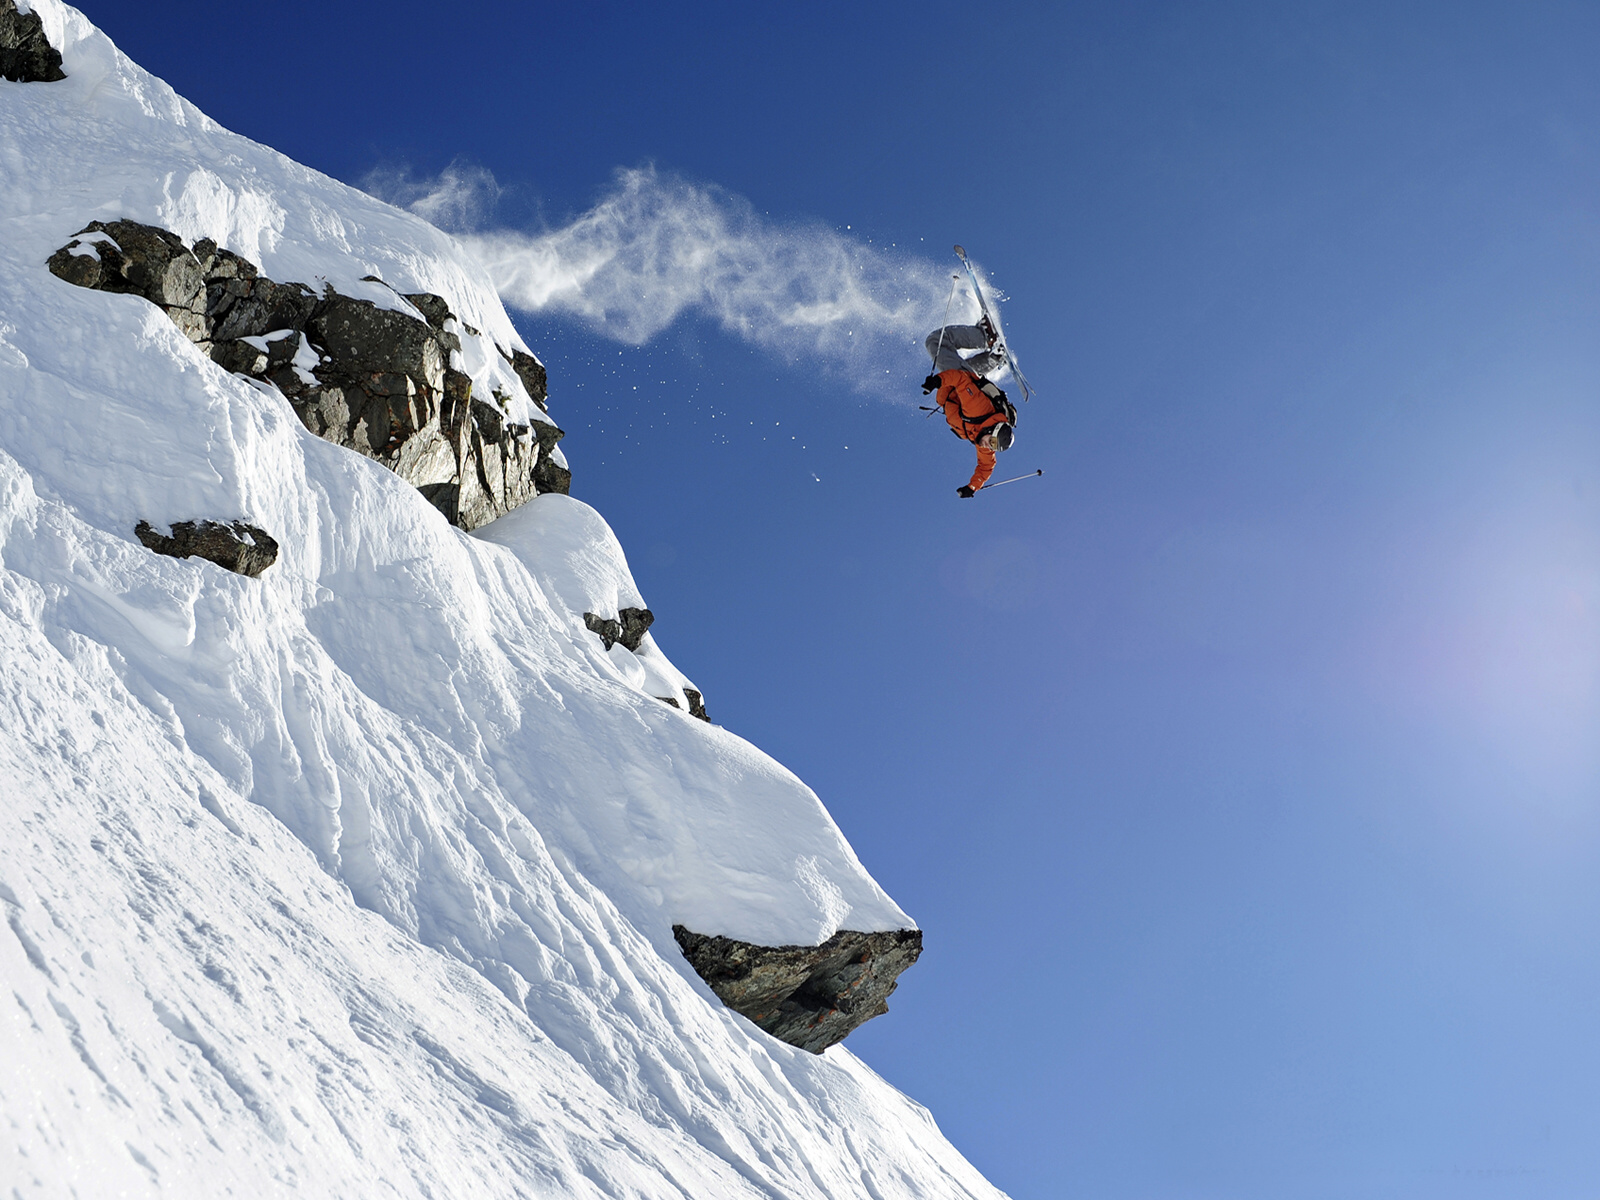 """People are Awesome """"Free Ski Video"""" with I Can, Something Big and Once A Day mixed in."""